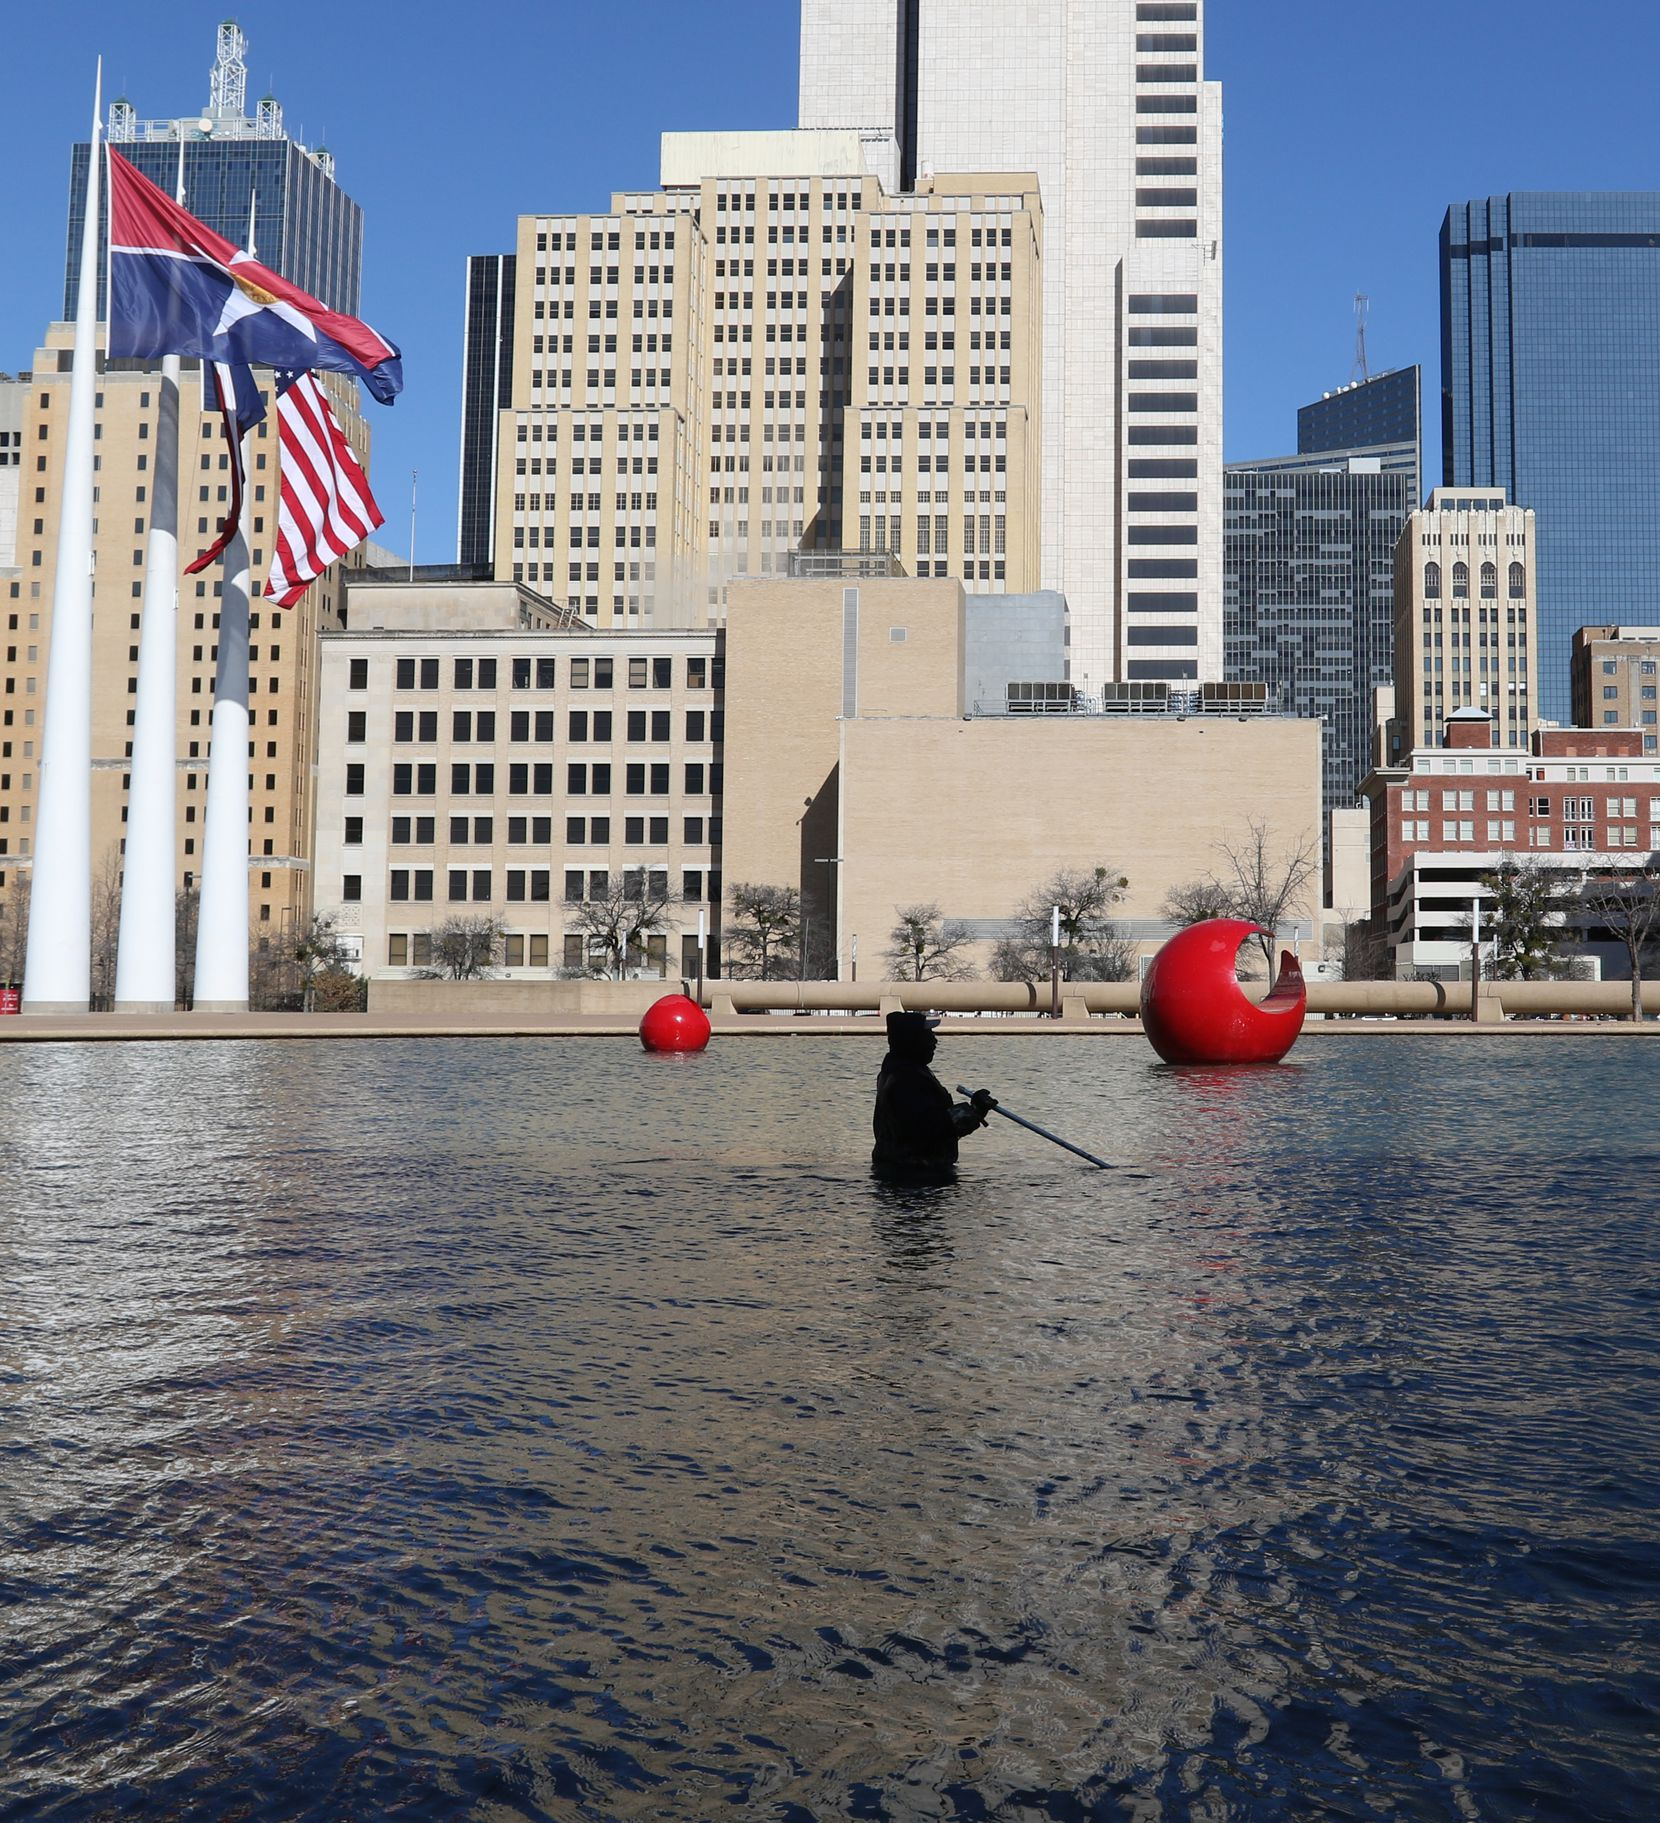 City of Dallas employee Kenneth Argusta cleans the reflecting pool at Dallas City Hall in downtown Dallas, Tuesday, February 12, 2019. (Benjamin Robinson/The Dallas Morning News)